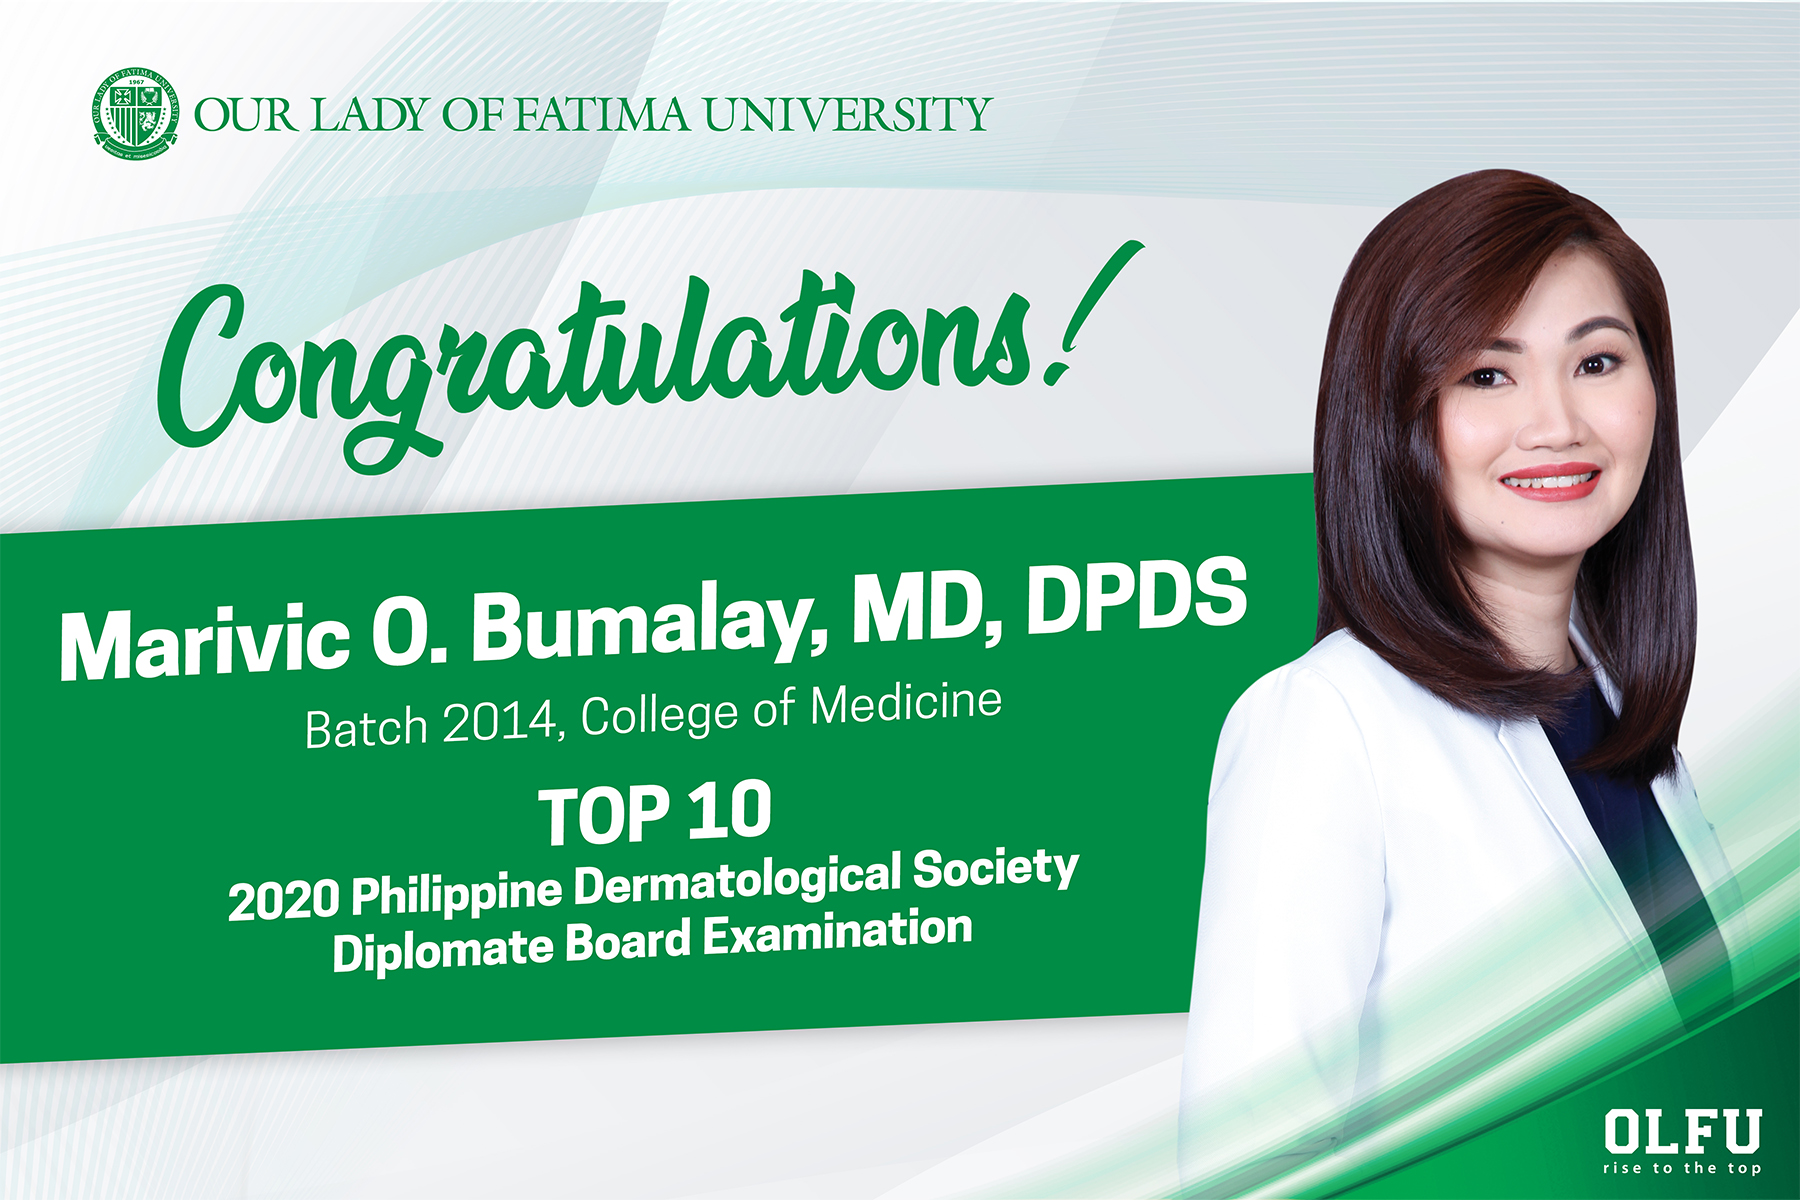 OLFU Medicine Alumna tops the Philippine Dermatological Society Diplomate Board Exam